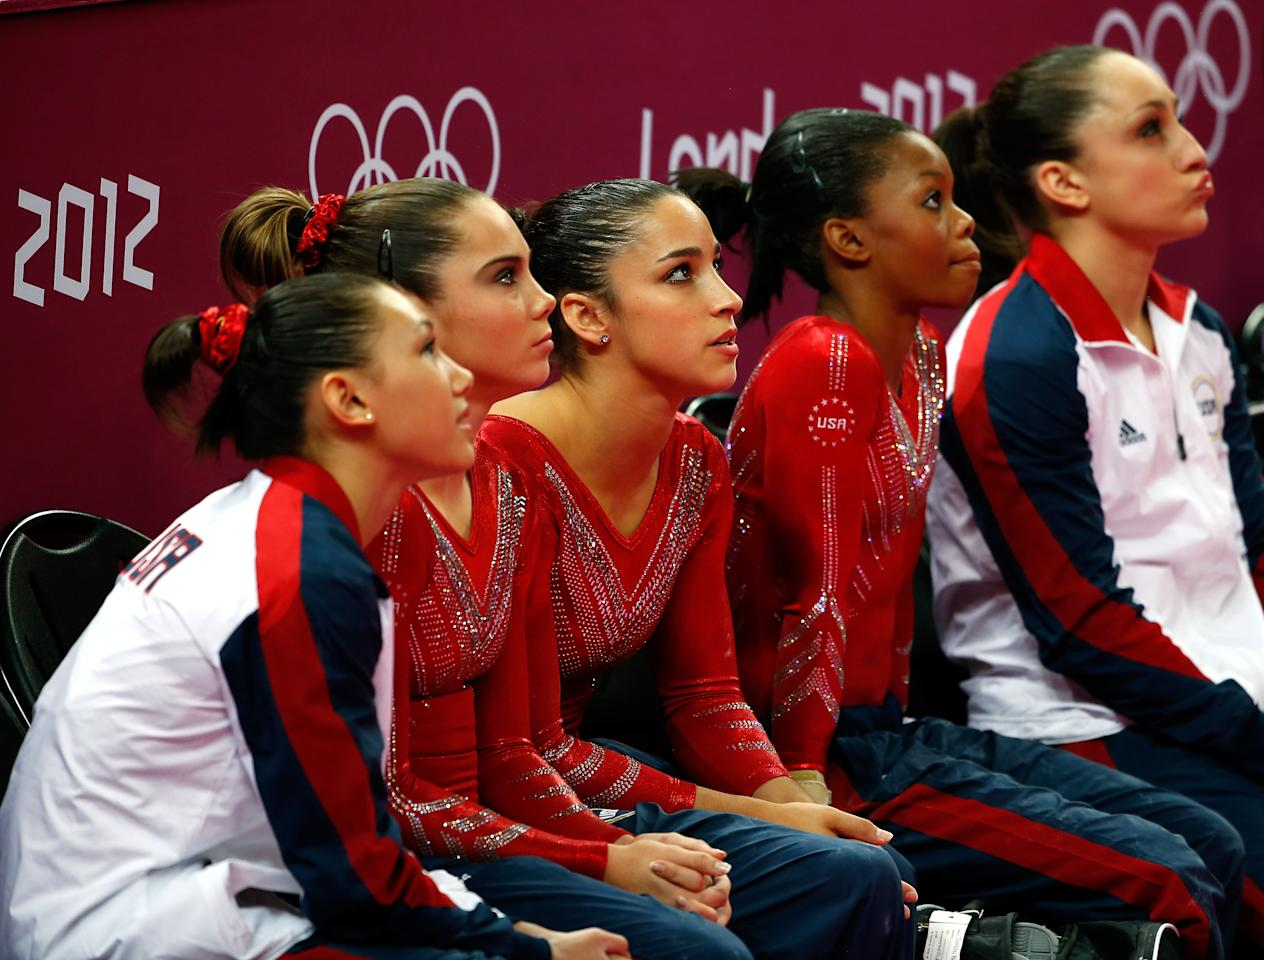 LONDON, ENGLAND - JULY 31:  (L-R) Kyla Ross, Mc Kayla Maroney, Alexandra Raisman, Gabrielle Douglas and Jordyn Wieber of the United States watch during the Artistic Gymnastics Women's Team final on Day 4 of the London 2012 Olympic Games at North Greenwich Arena on July 31, 2012 in London, England.  (Photo by Jamie Squire/Getty Images)